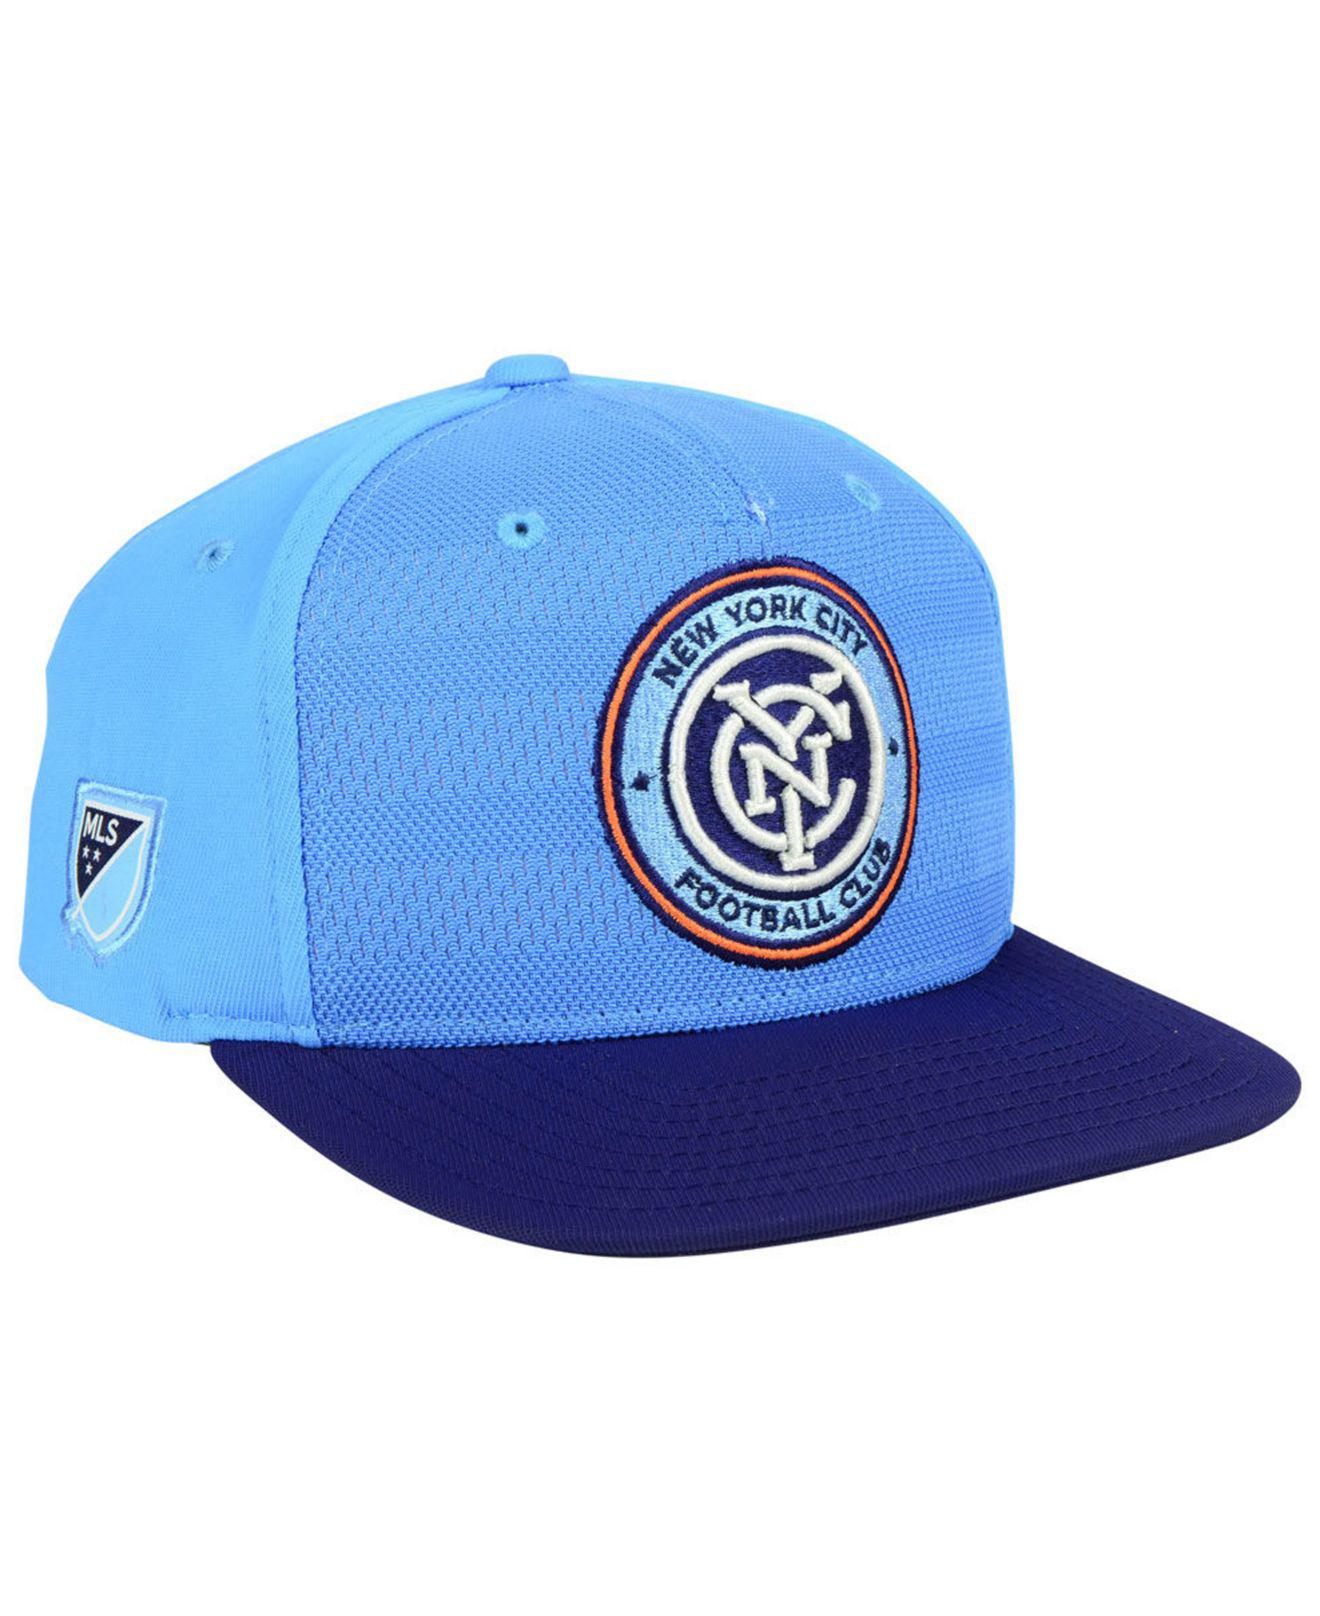 cheaper 7d84f 24c98 Lyst - Adidas New York City Fc Authentic Snapback Cap in Blue for Men